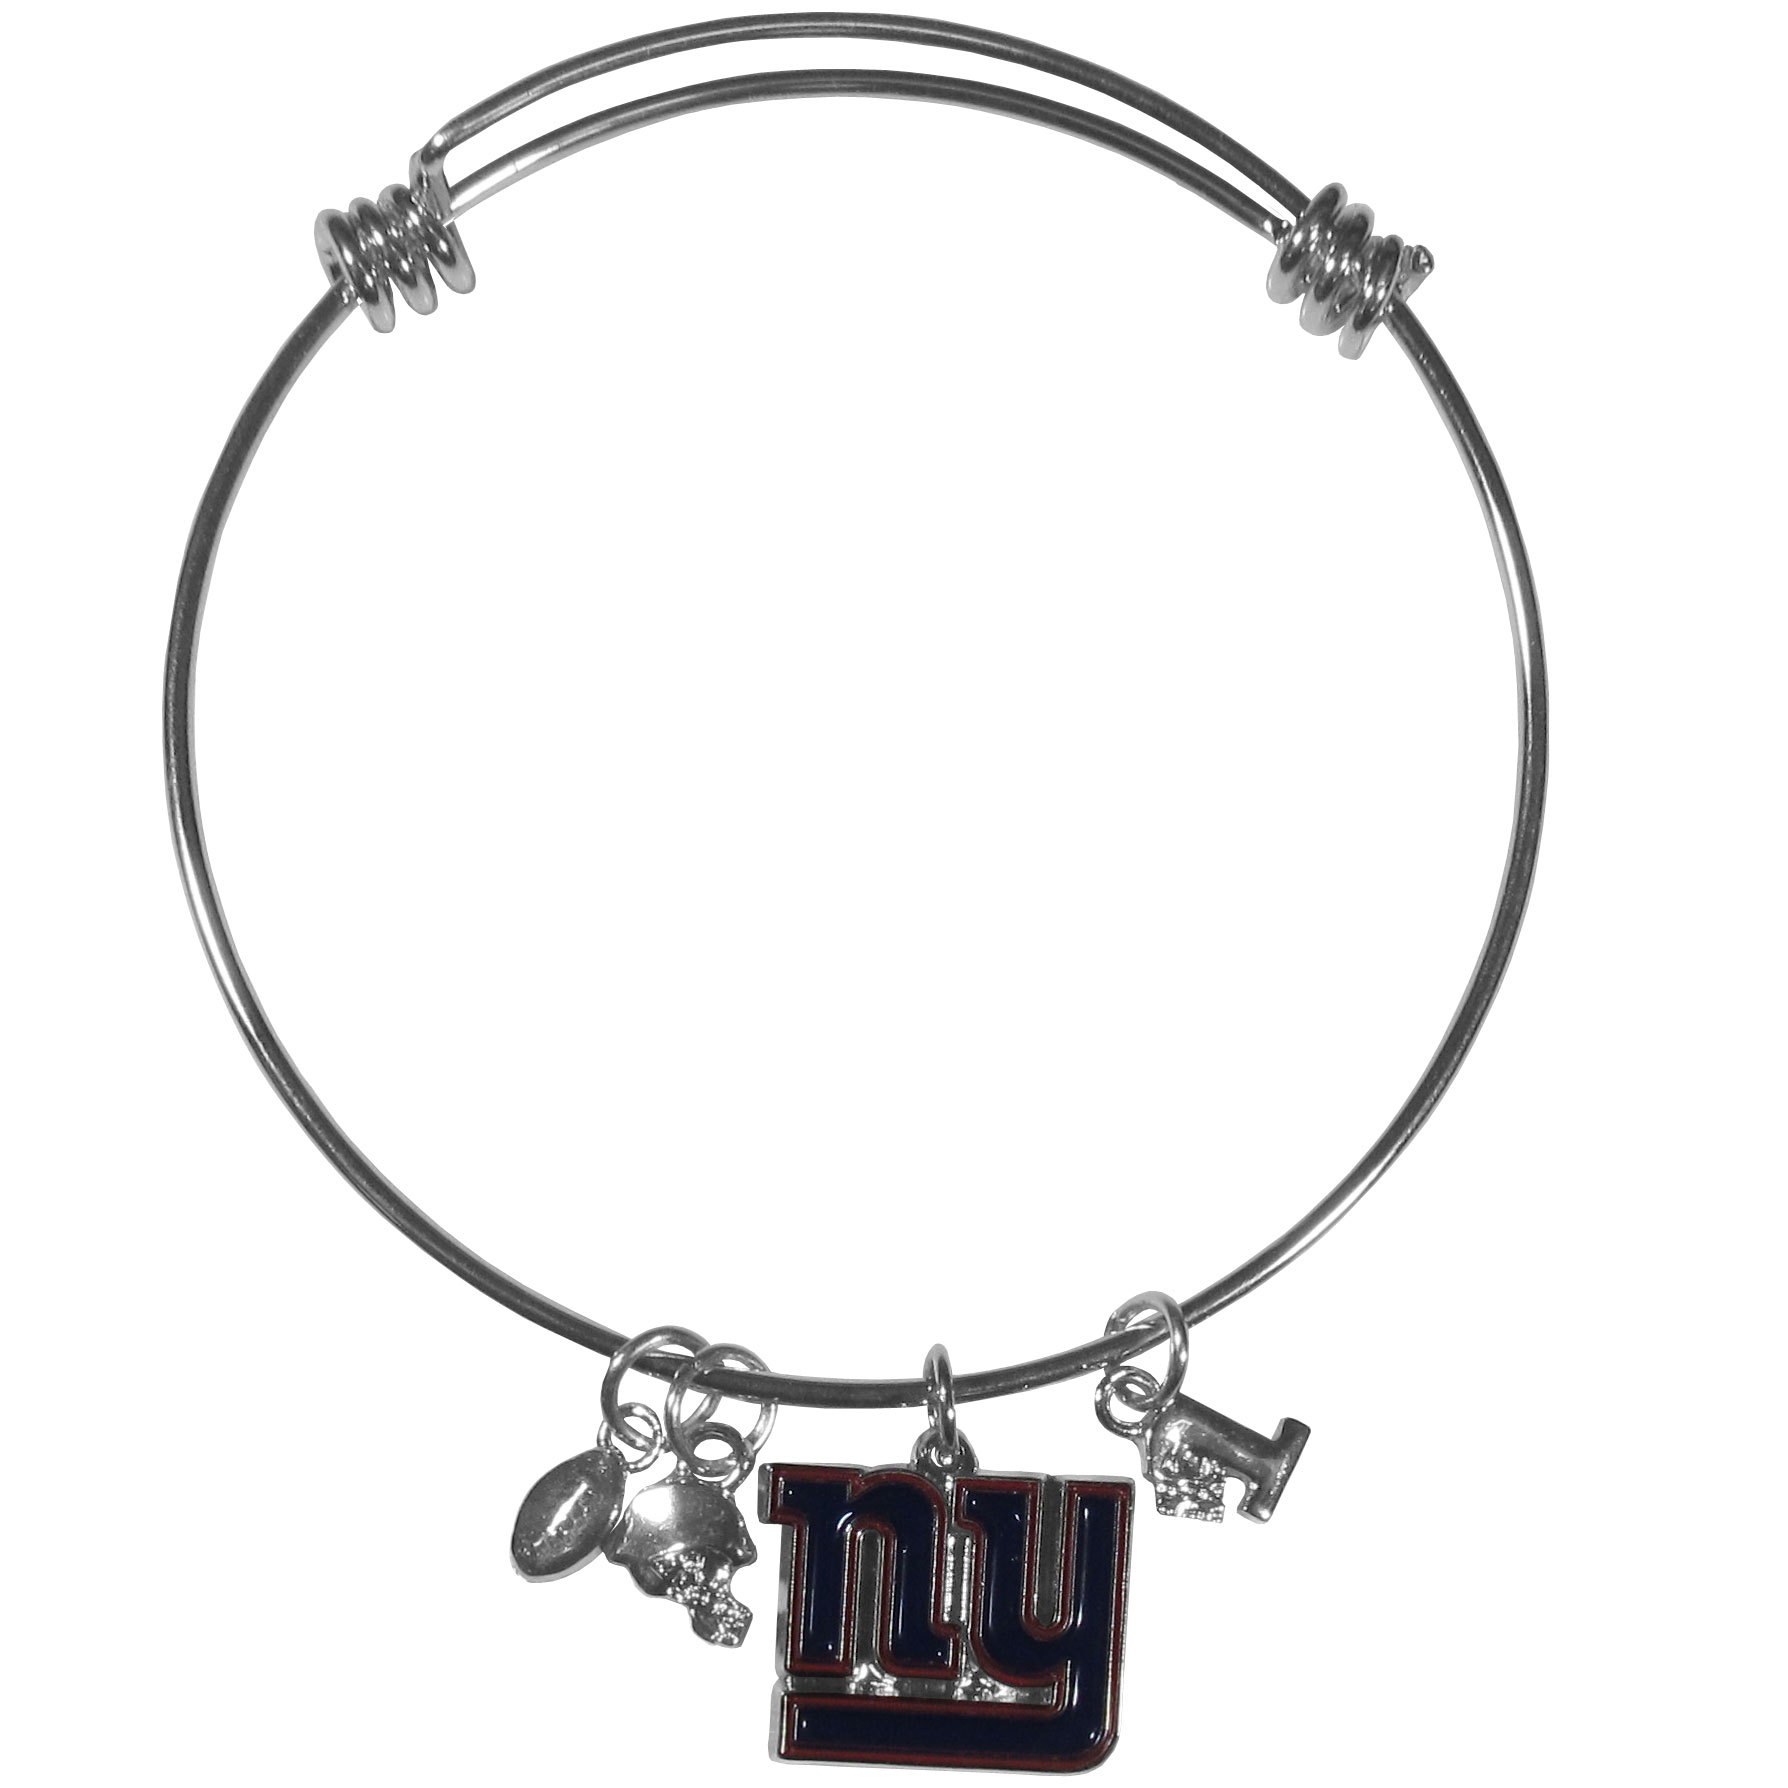 New York Giants Charm Bangle Bracelet - Adjustable wire bracelets are all the rage and this New York Giants bracelet matches the popular trend with your beloved team. The bracelet features 4 charms in total, each feature exceptional detail and the team charm has enameled team colors.